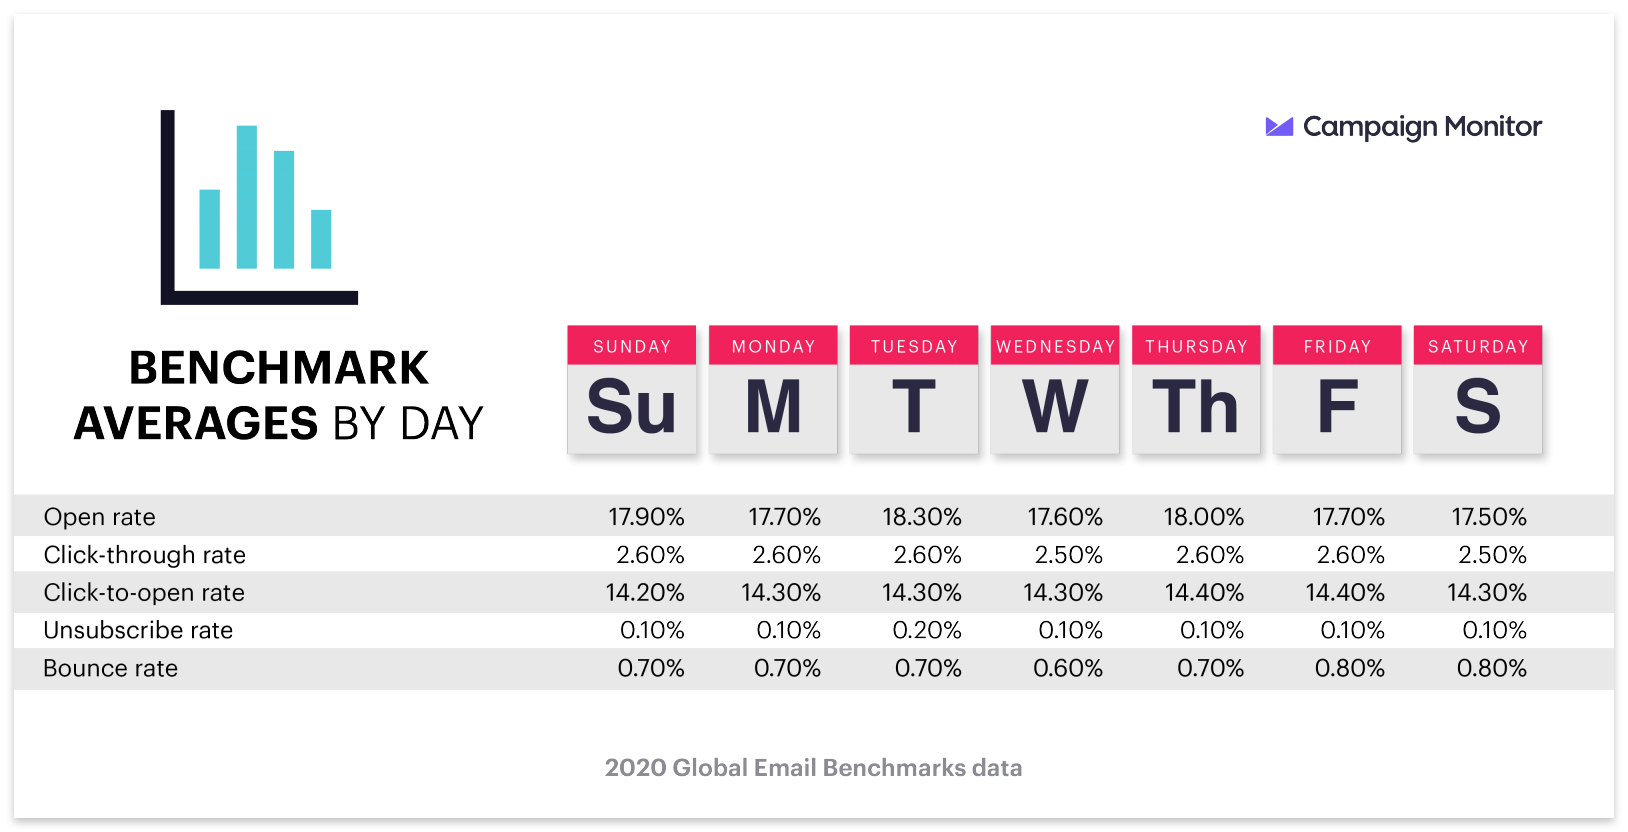 Benchmark averages by day